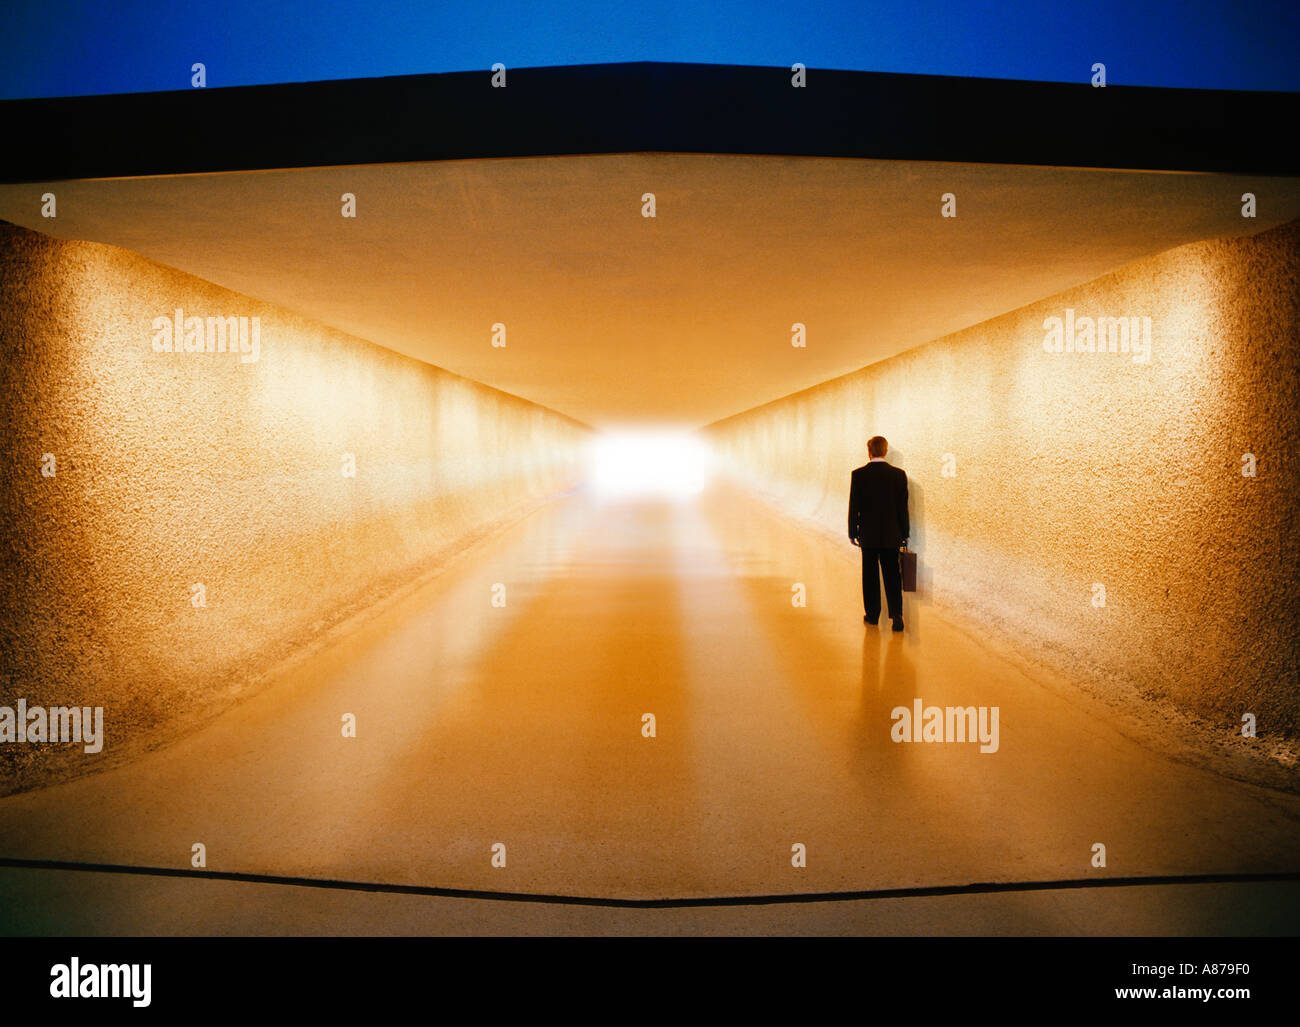 Businessman with briefcase walking down corridor toward baggage claim and ground transportation at an airport - Stock Image